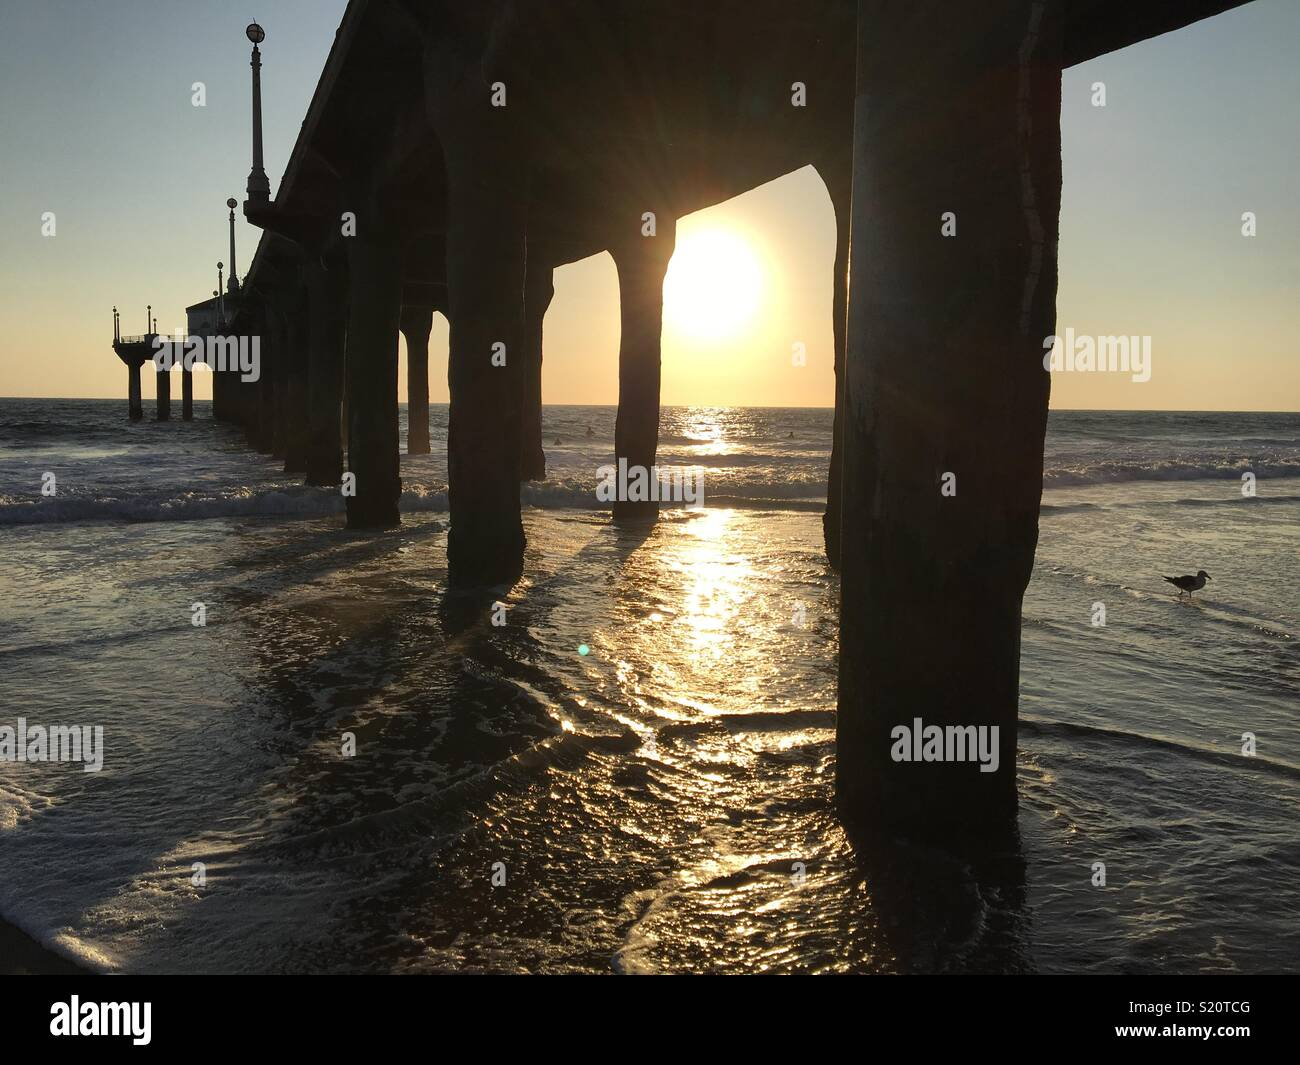 Manhattan Beach Pier California - Stock Image